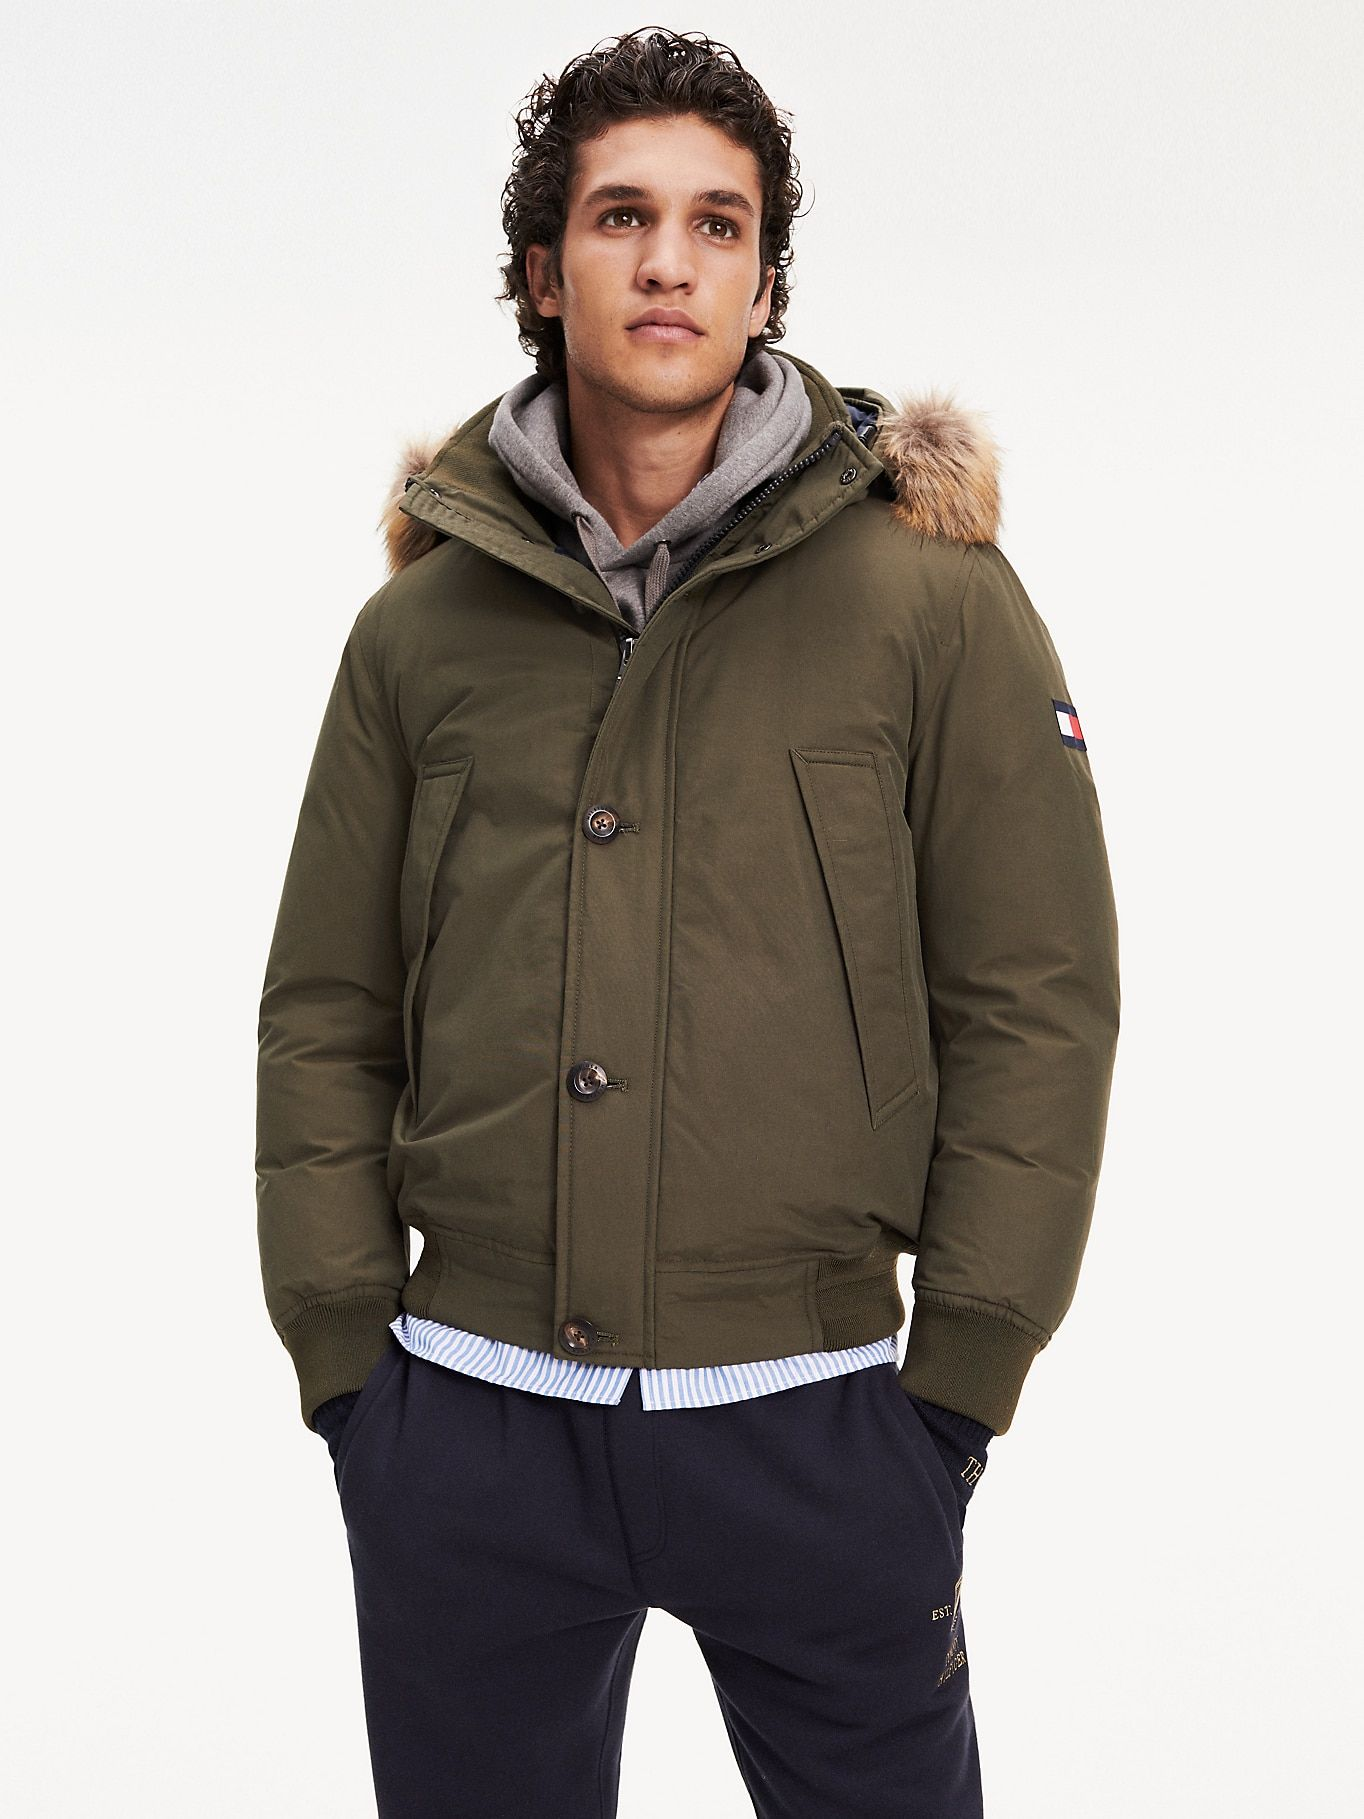 Down Filled Hooded Bomber Jacket Blue Tommy Hilfiger Hooded Bomber Jacket Bomber Jacket Tommy Hilfiger Man [ 1819 x 1364 Pixel ]